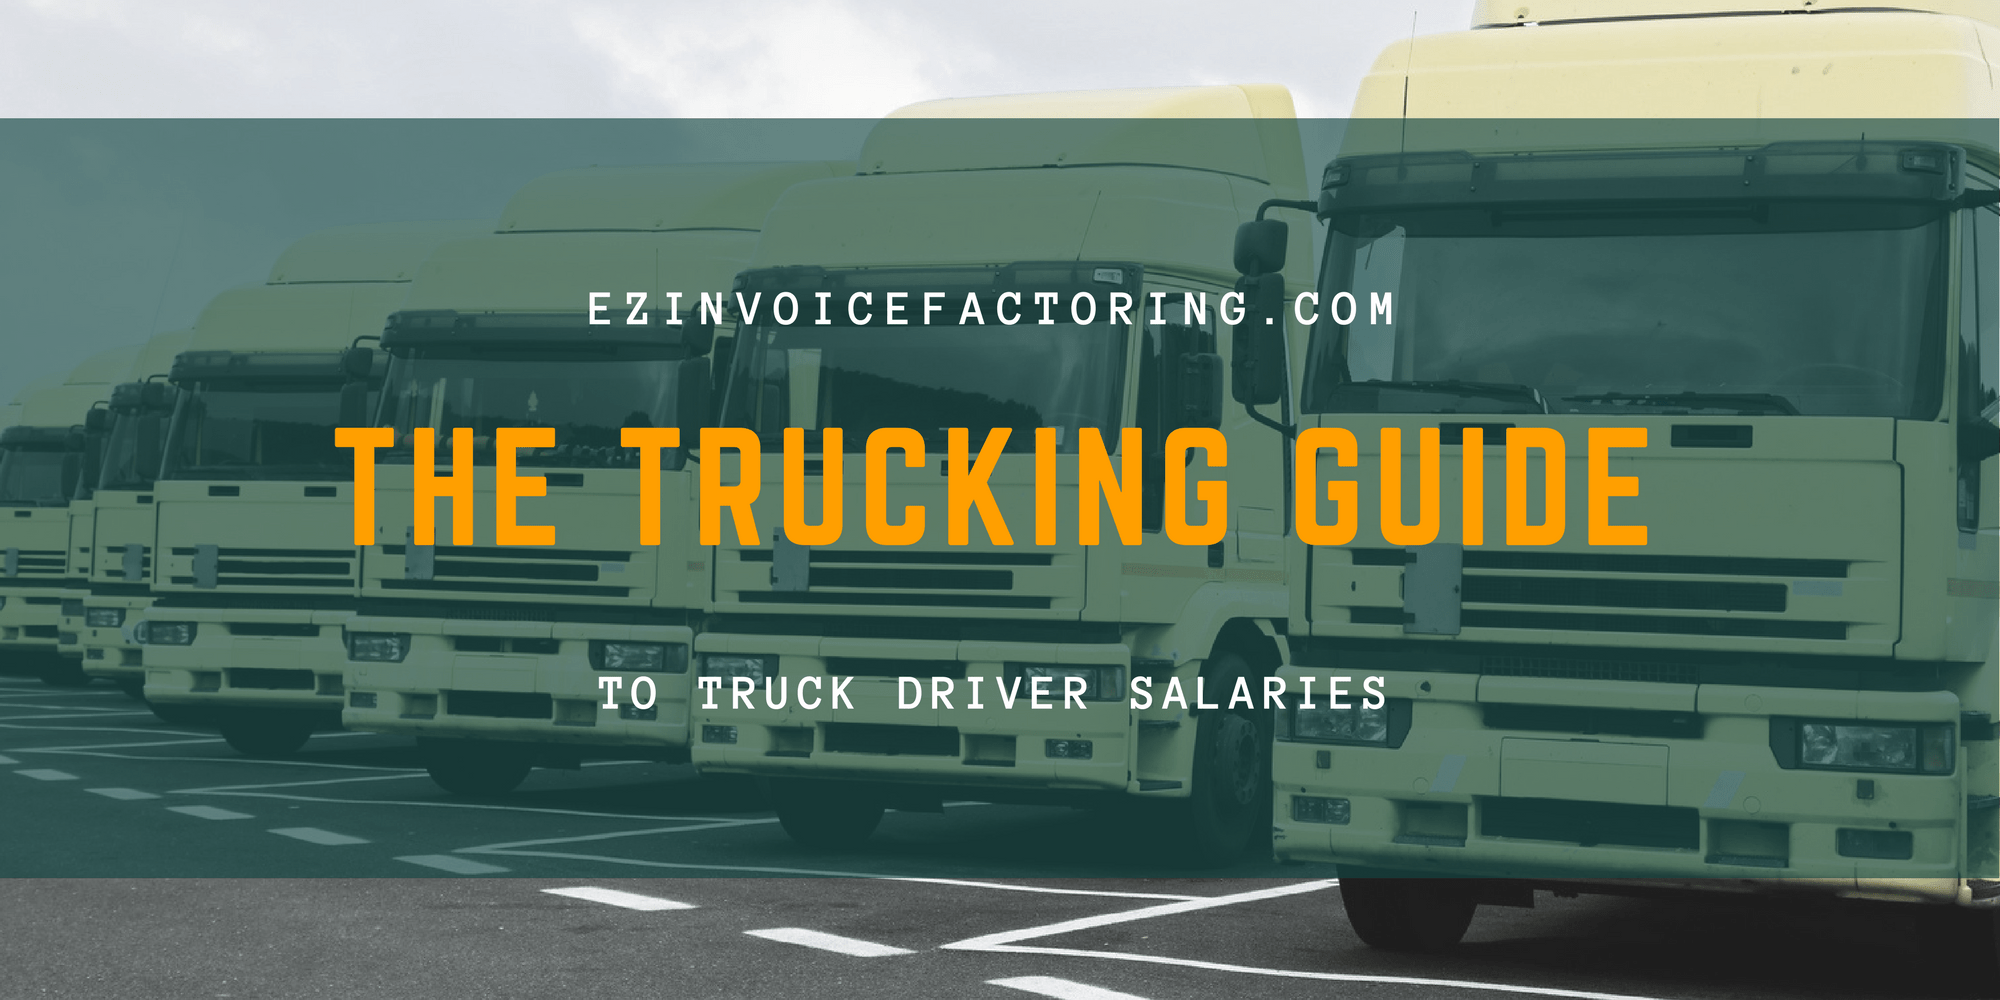 How Much Money Do Truck Drivers Earn? - EZ Invoice Factoring